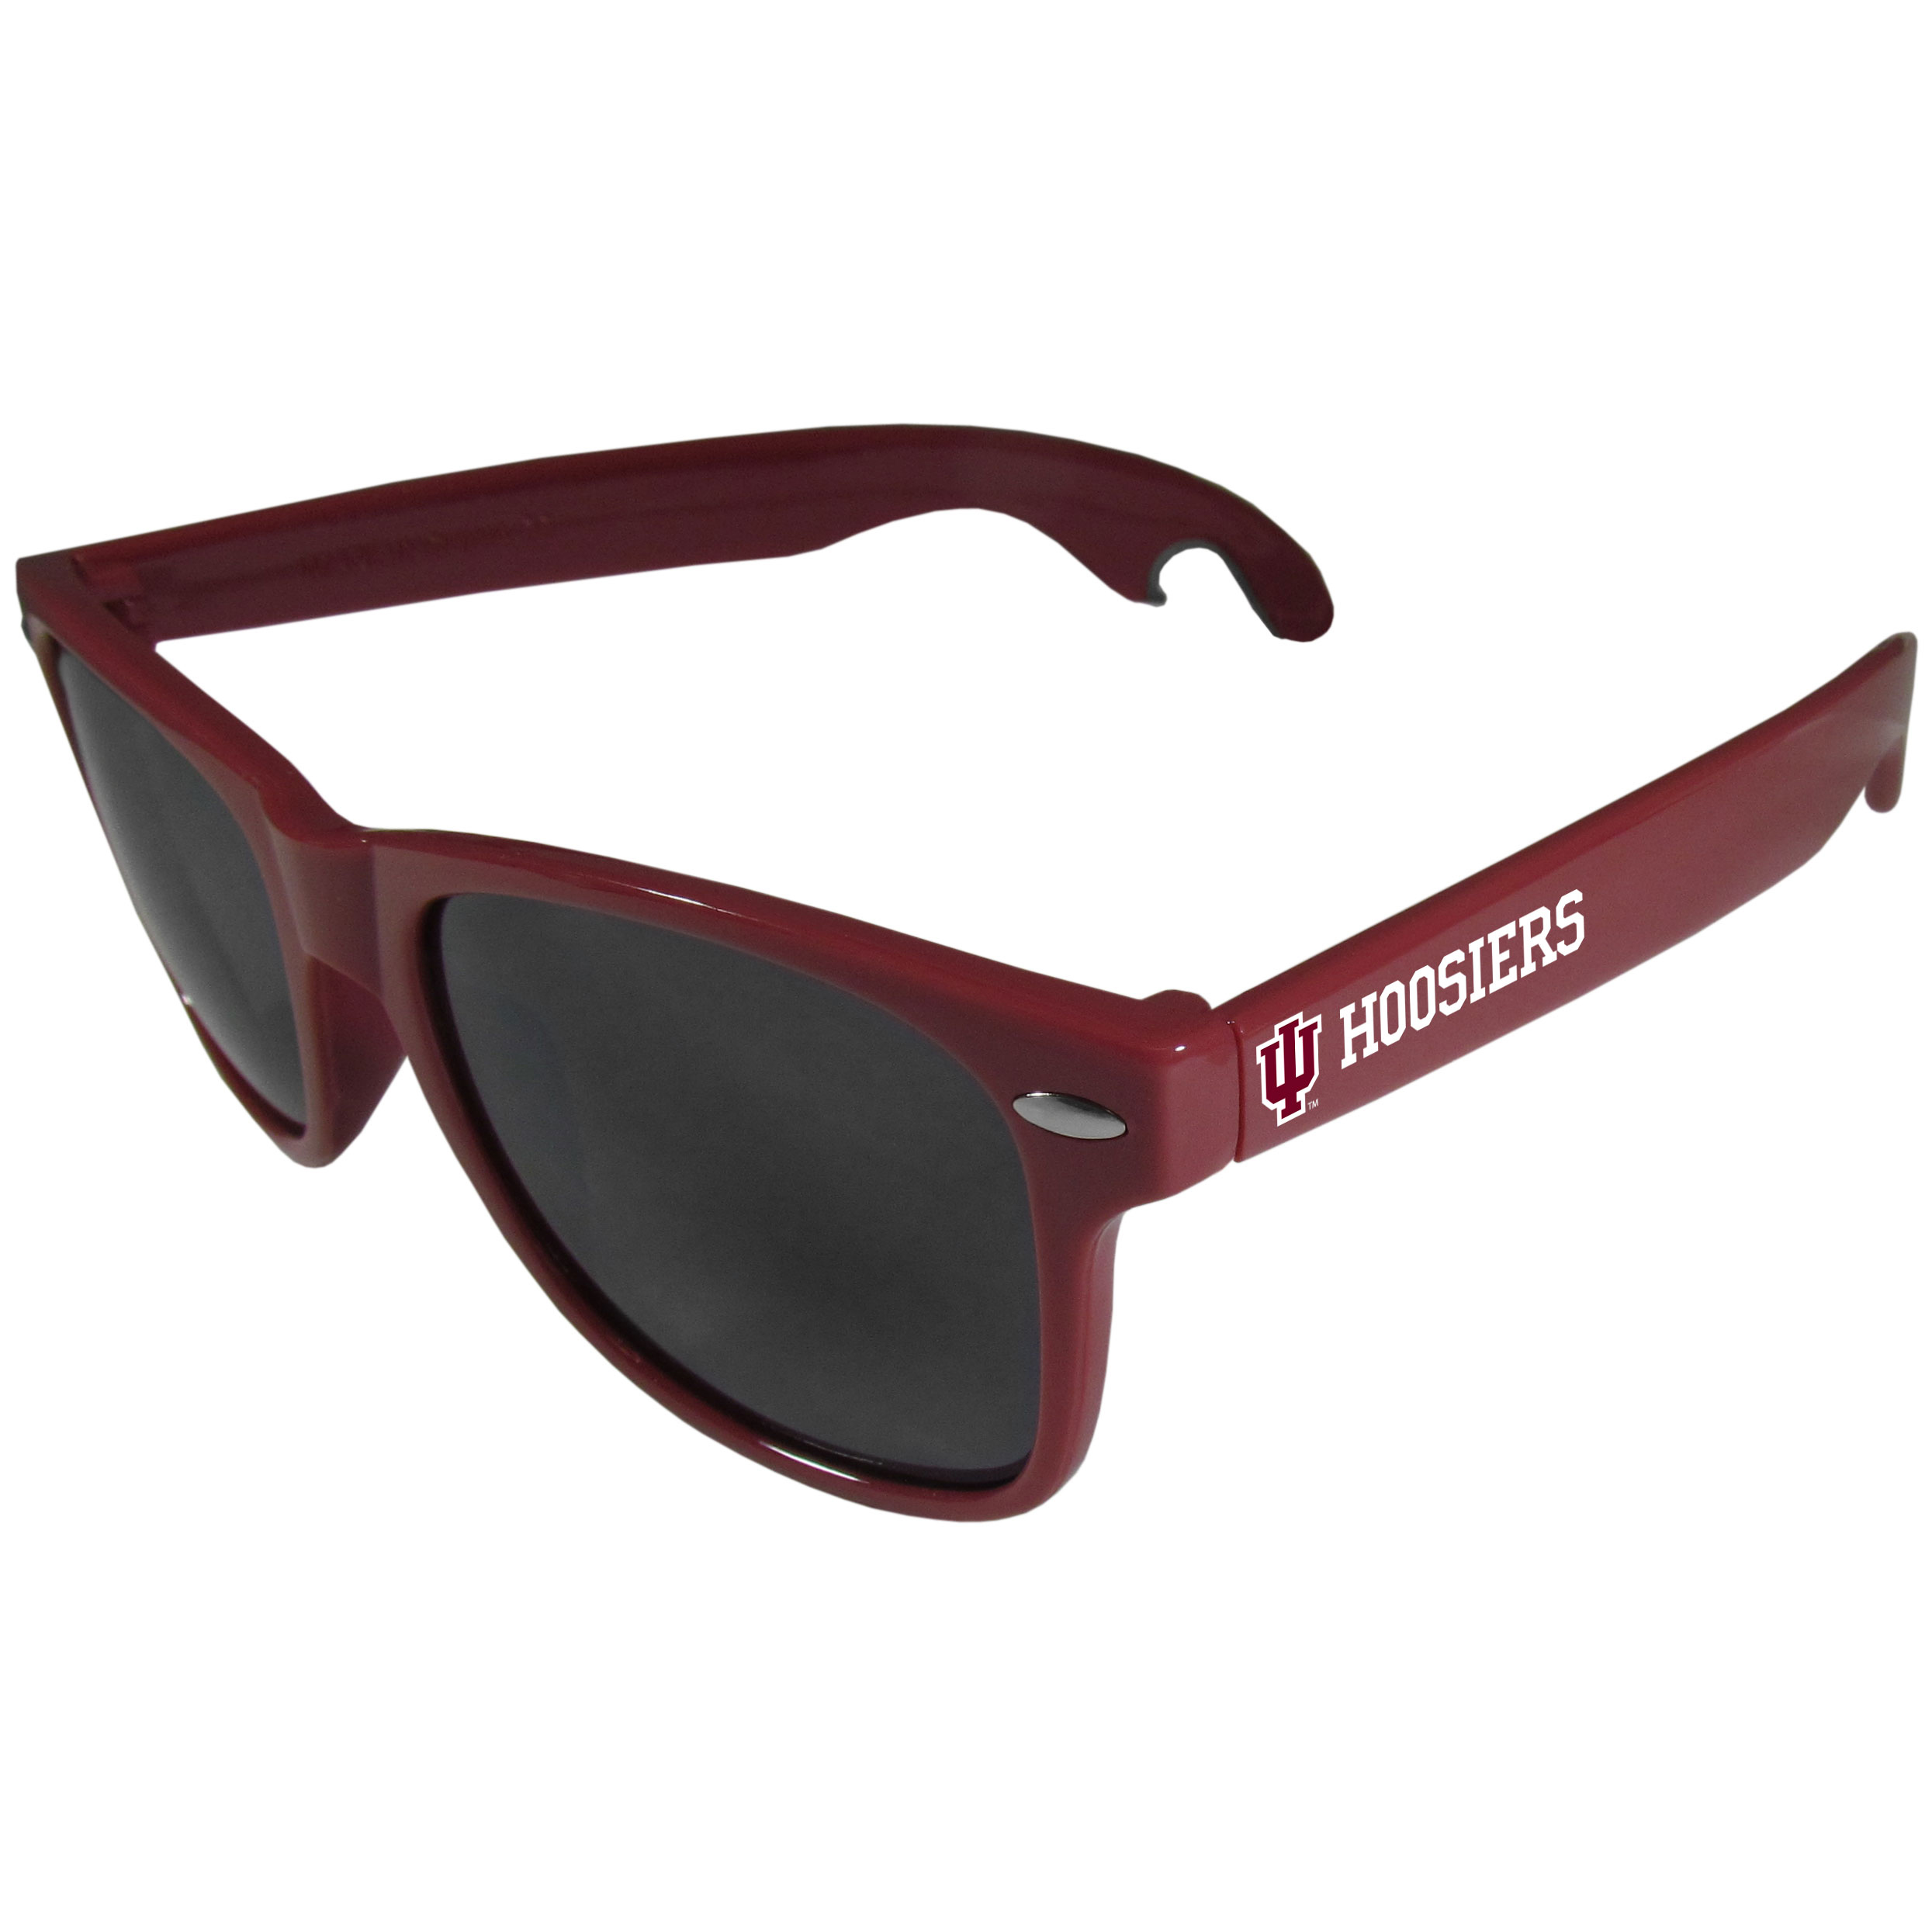 Indiana Hoosiers Beachfarer Bottle Opener Sunglasses, Maroon - Seriously, these sunglasses open bottles! Keep the party going with these amazing Indiana Hoosiers bottle opener sunglasses. The stylish retro frames feature team designs on the arms and functional bottle openers on the end of the arms. Whether you are at the beach or having a backyard BBQ on game day, these shades will keep your eyes protected with 100% UVA/UVB protection and keep you hydrated with the handy bottle opener arms.